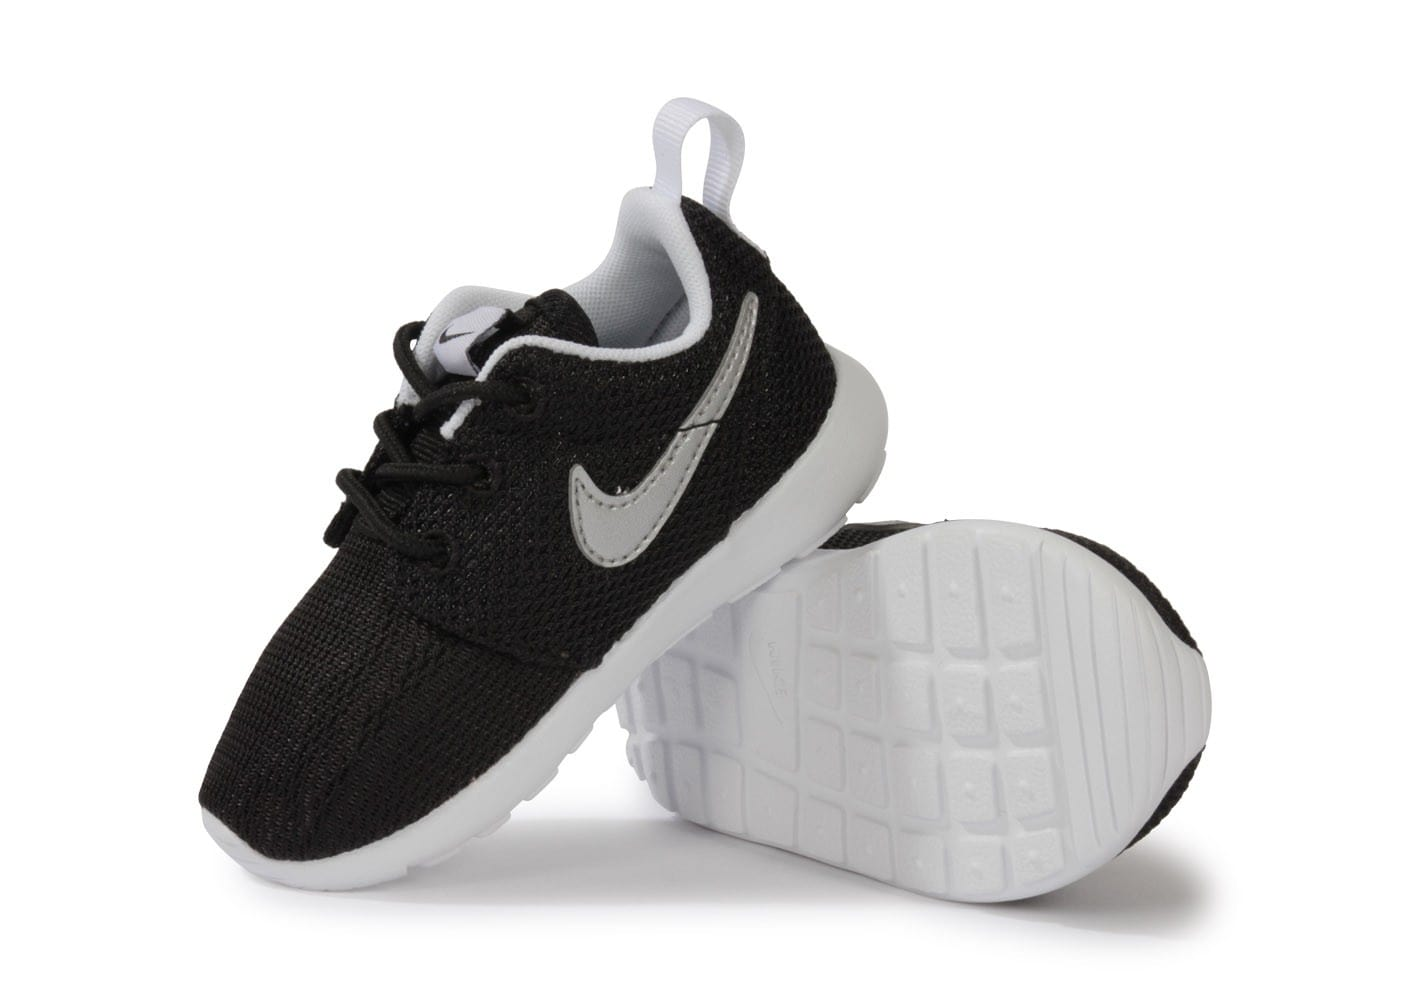 nouvelle roshe run nike vandales baskets. Black Bedroom Furniture Sets. Home Design Ideas